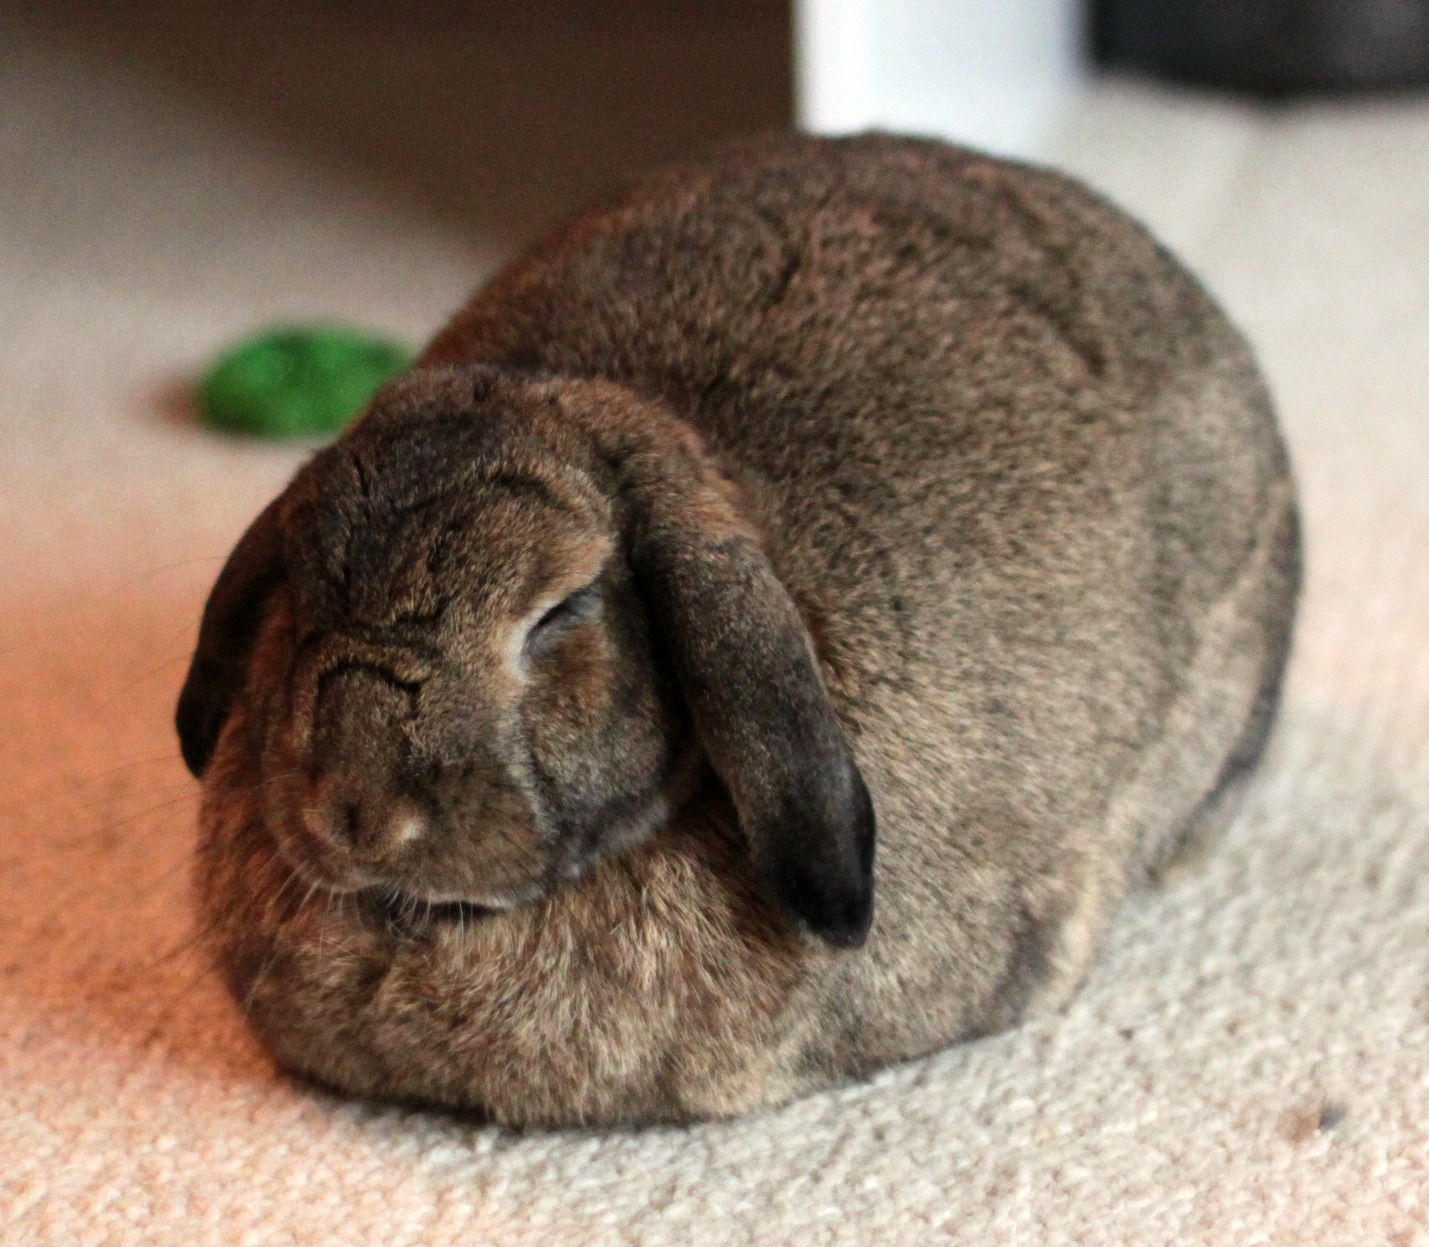 Cinnamon being the Cadbury bunny